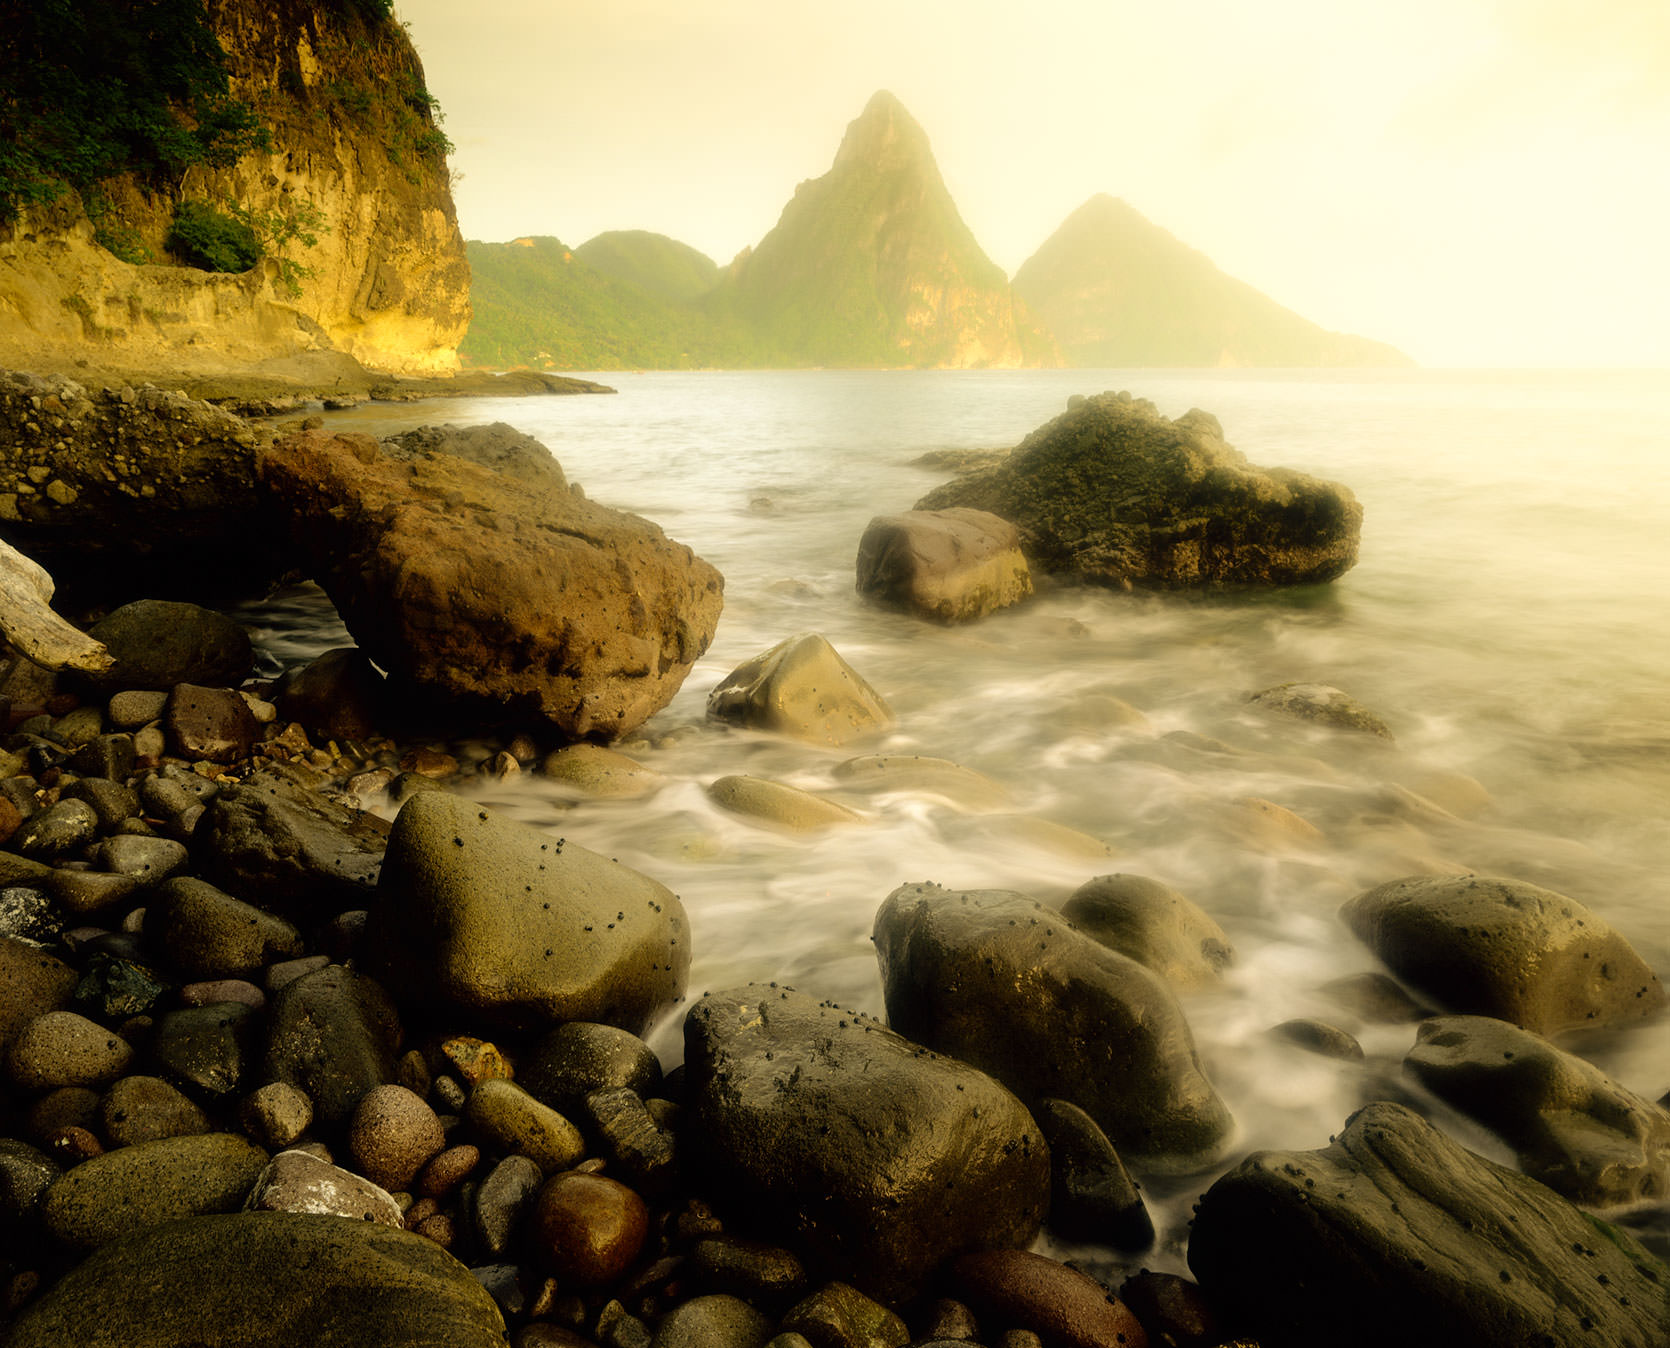 St. Lucia Pitons, near Anse Chastenet